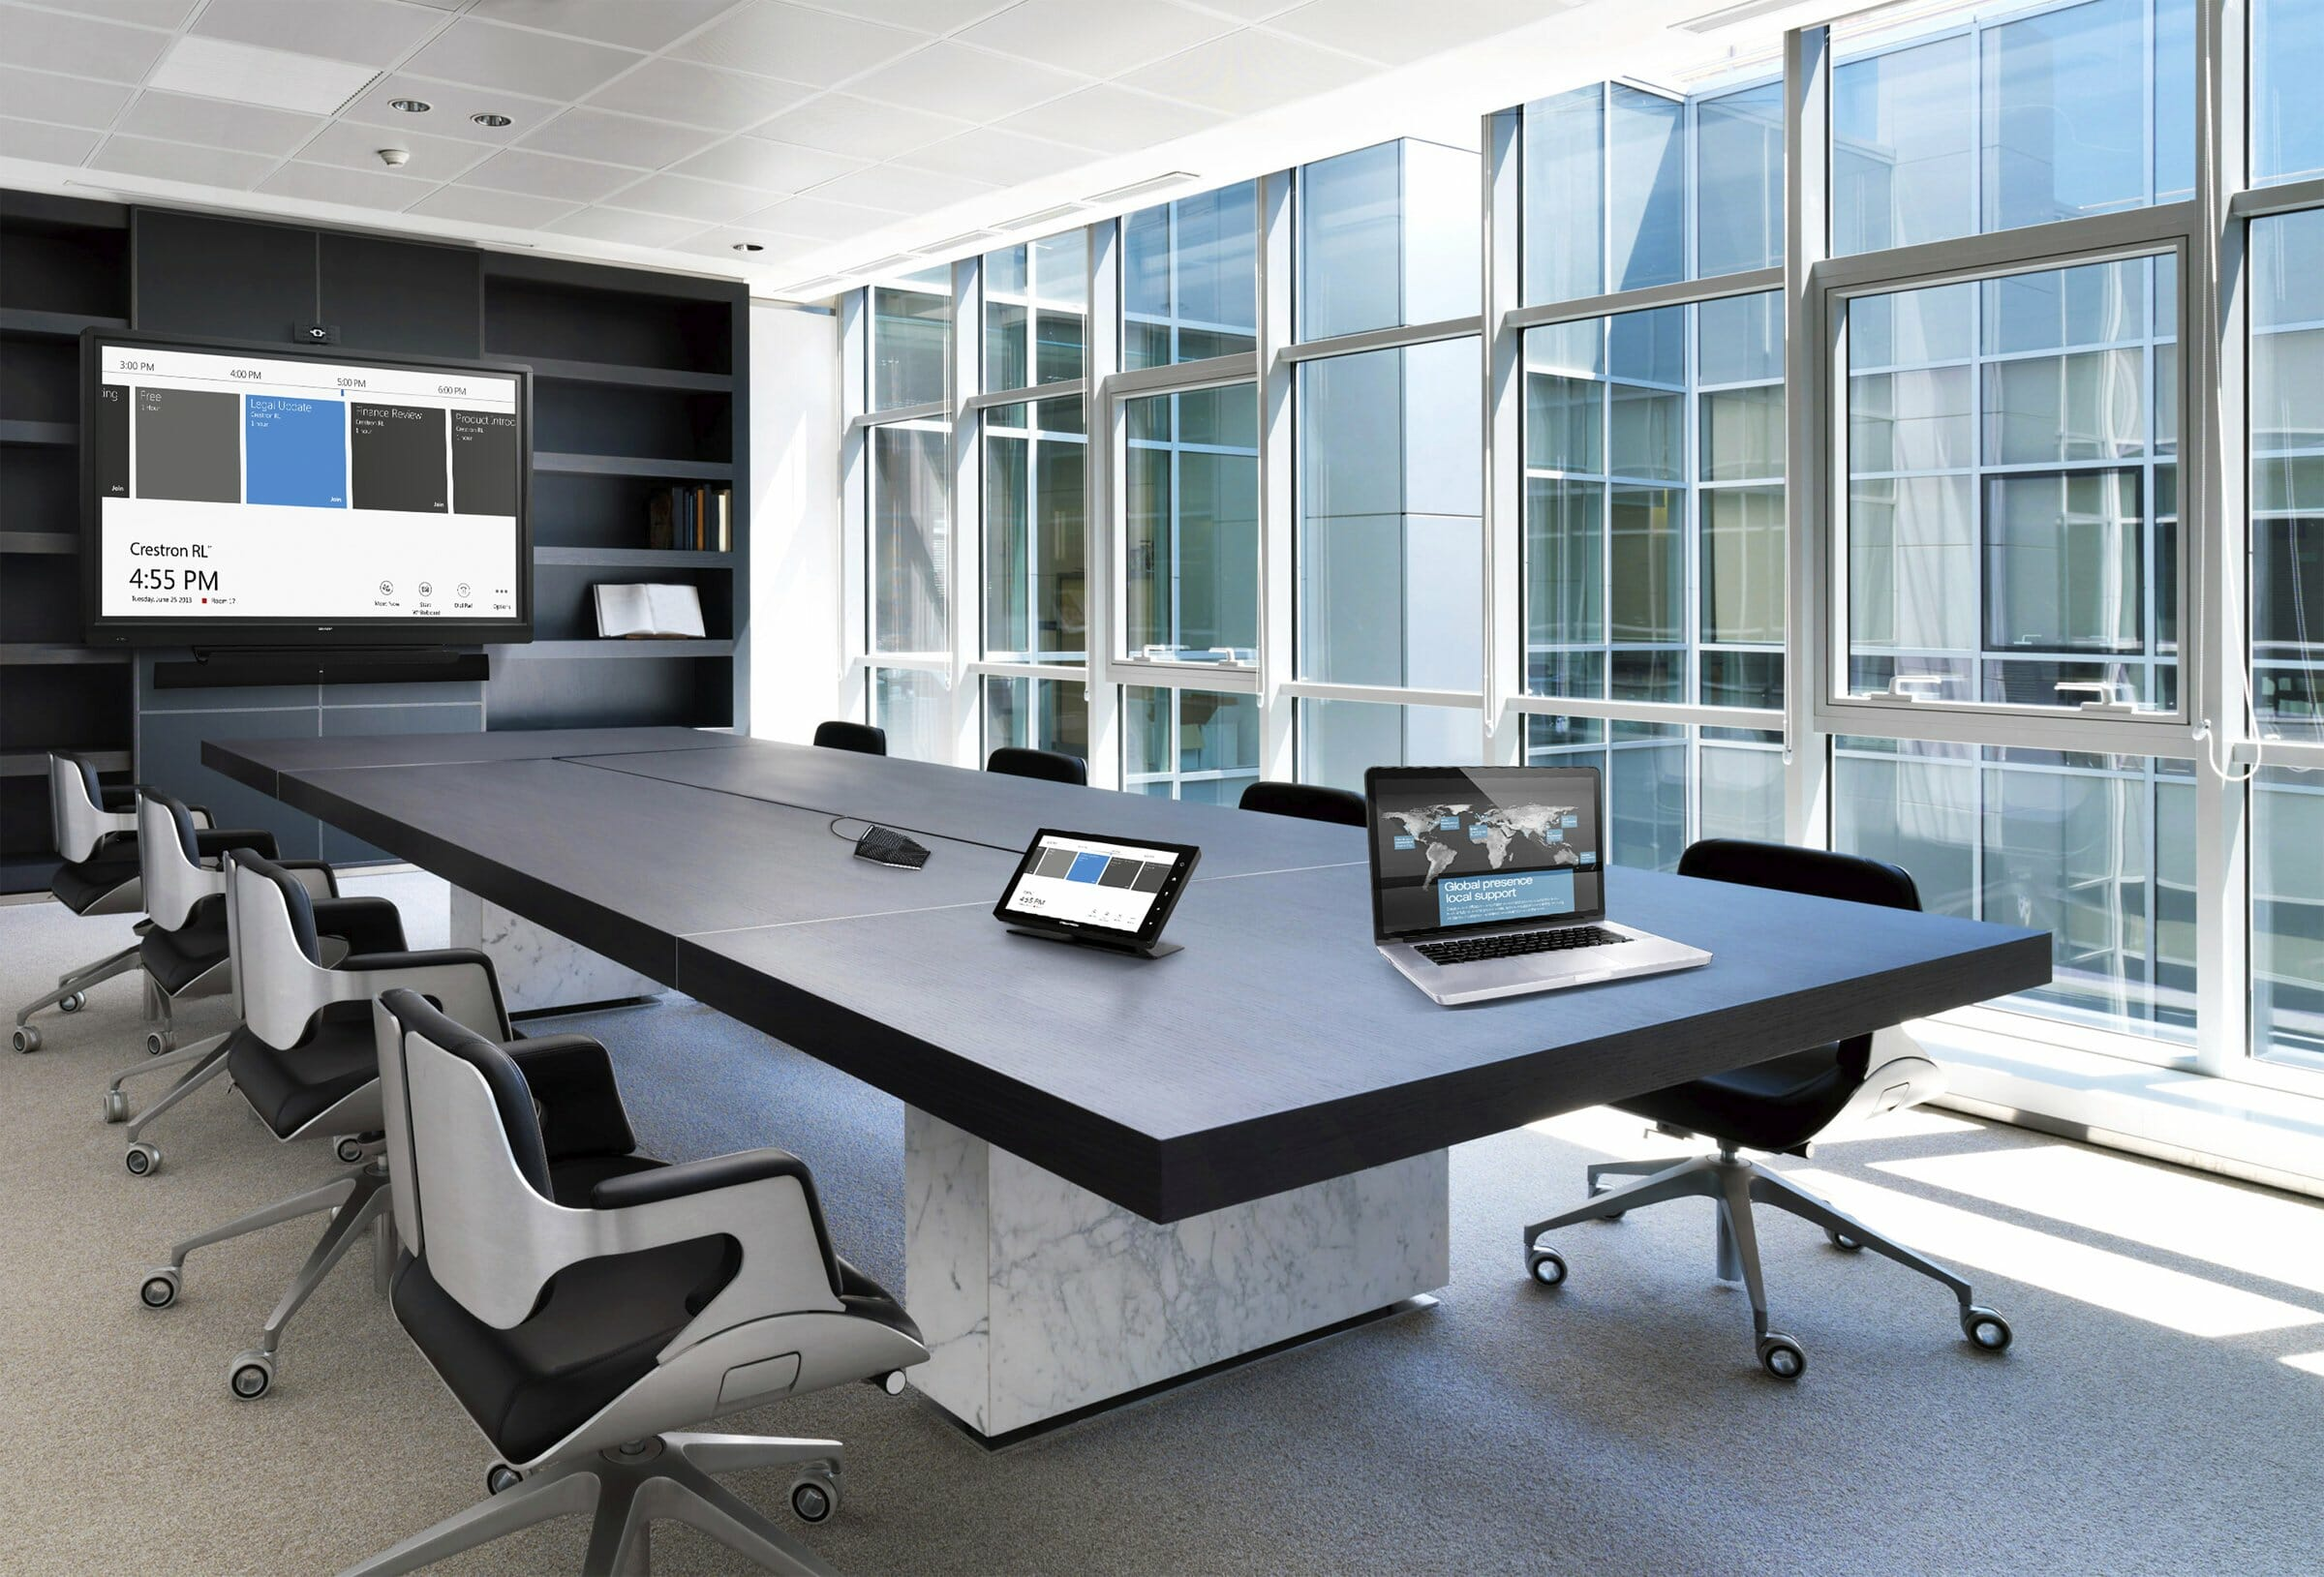 conference room automation solutions